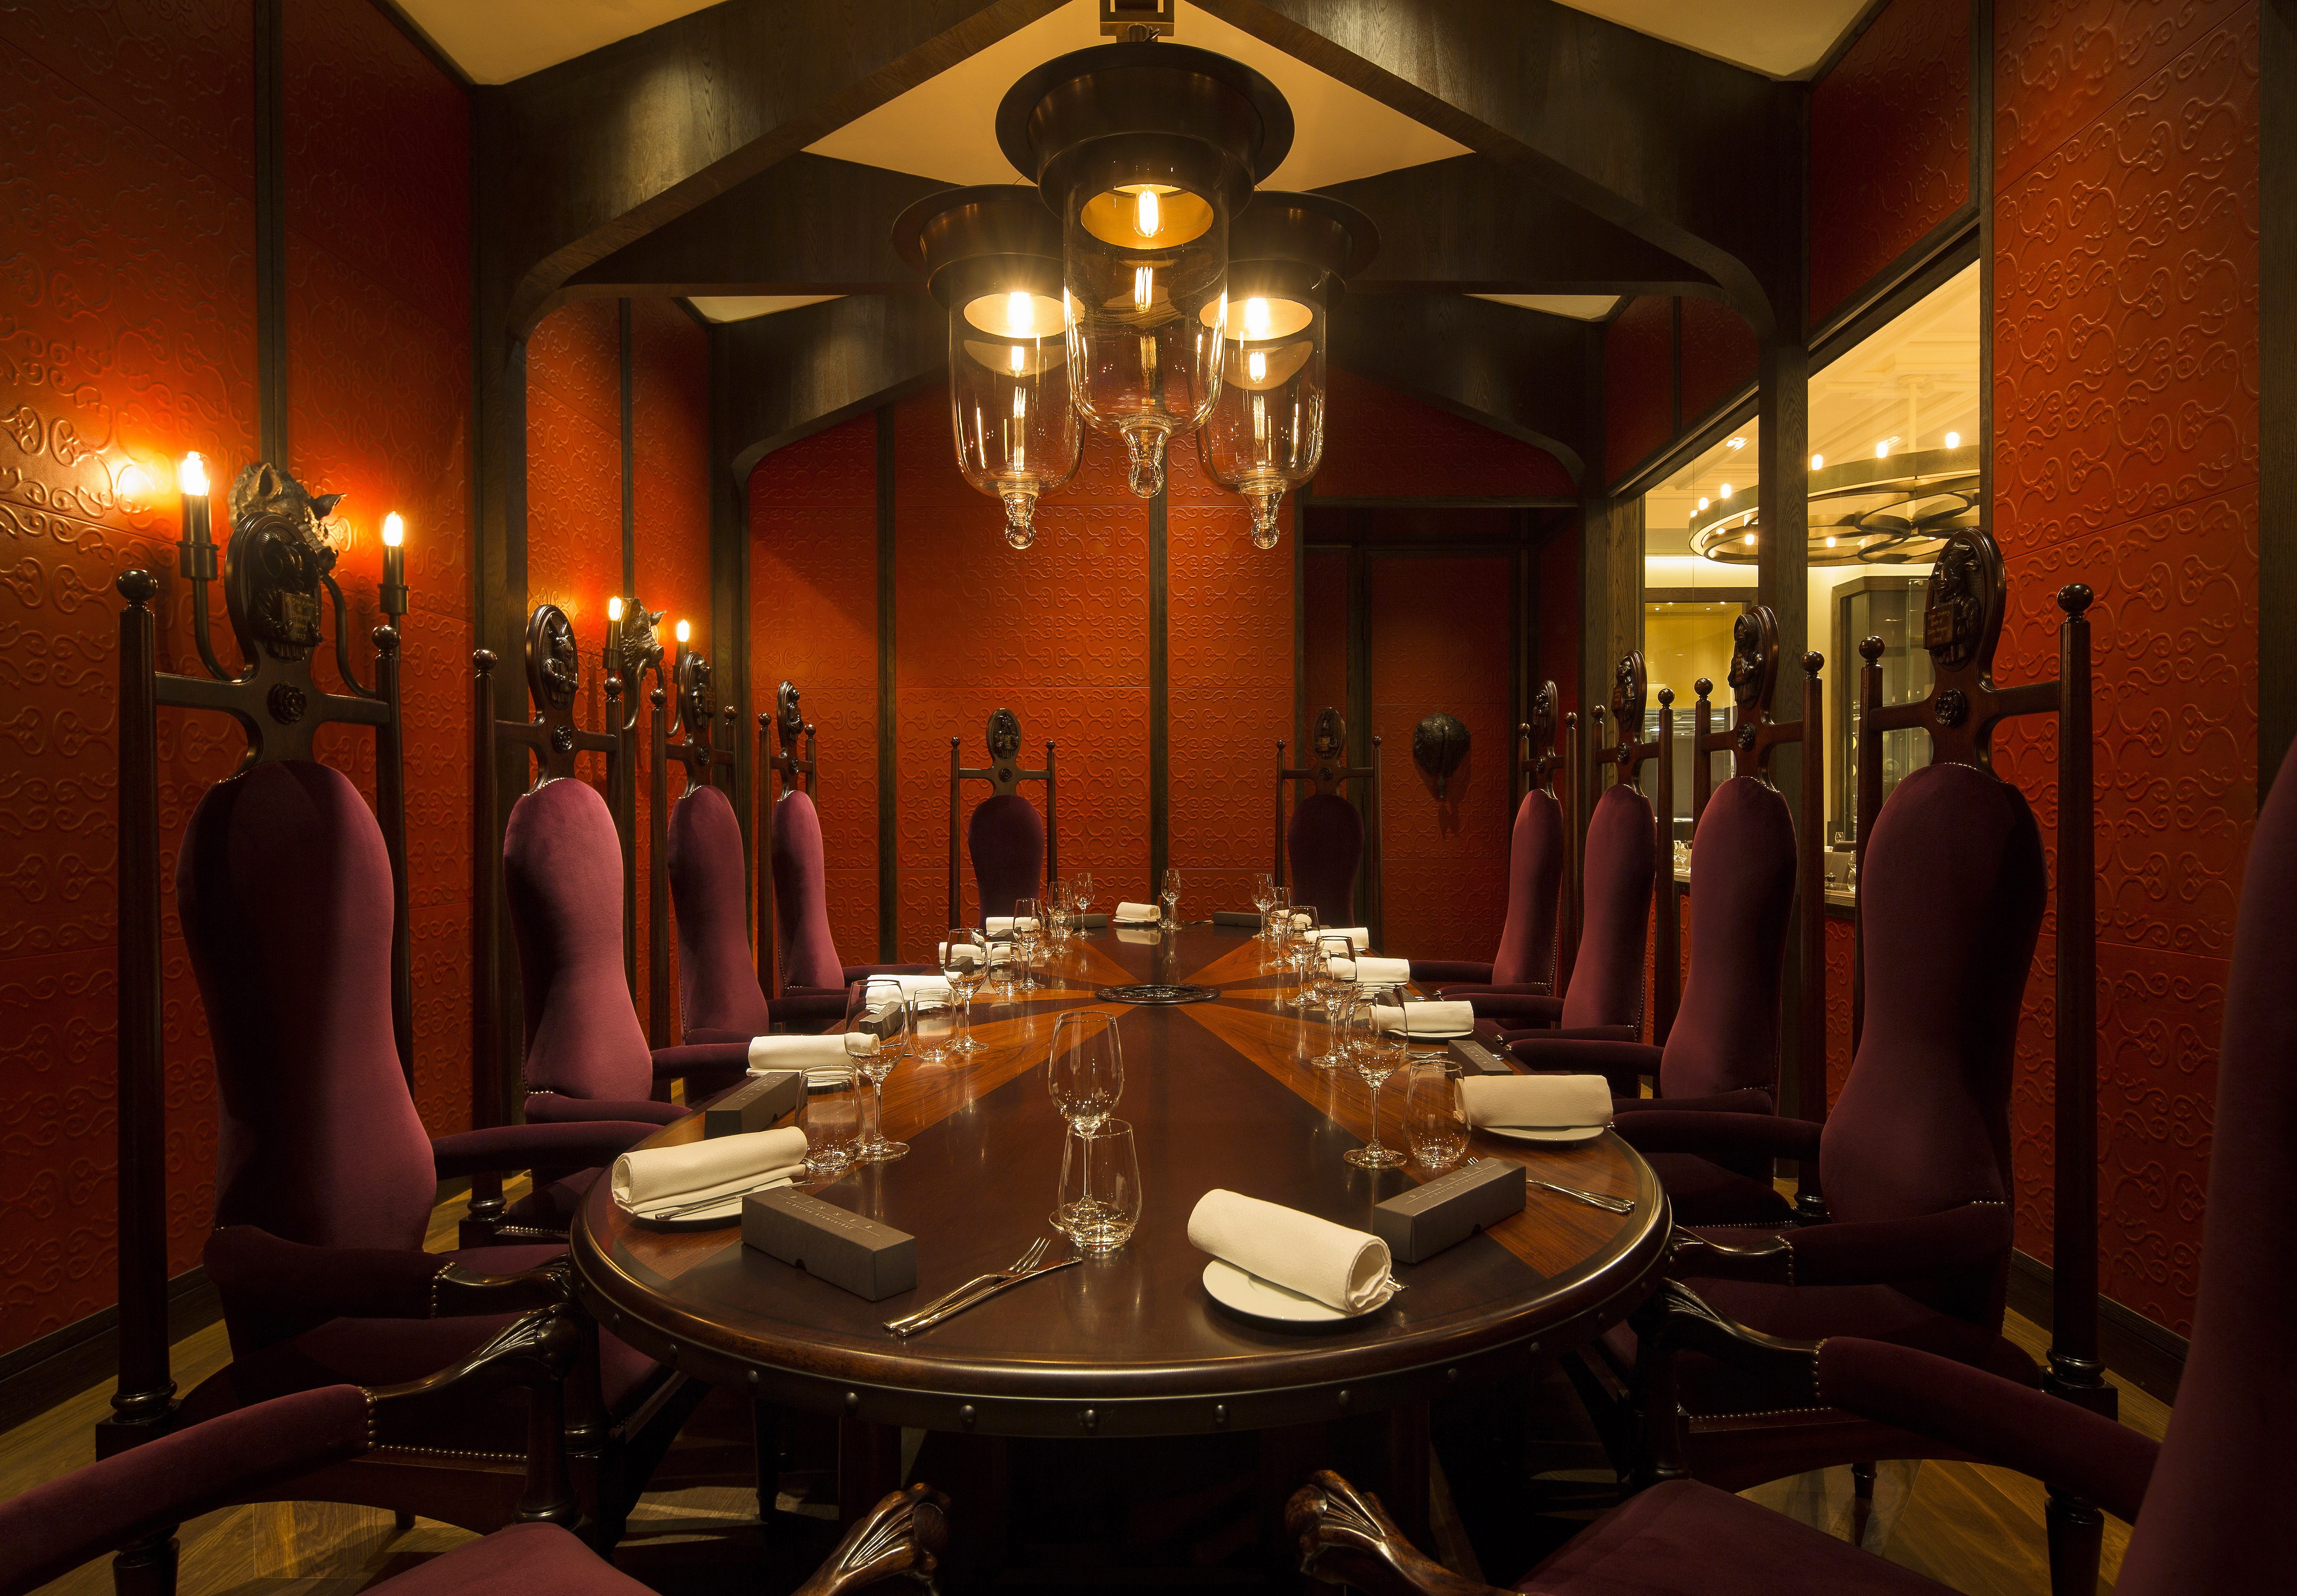 PrivateDiningRoom1 Dinner by HB Copyright John Carey